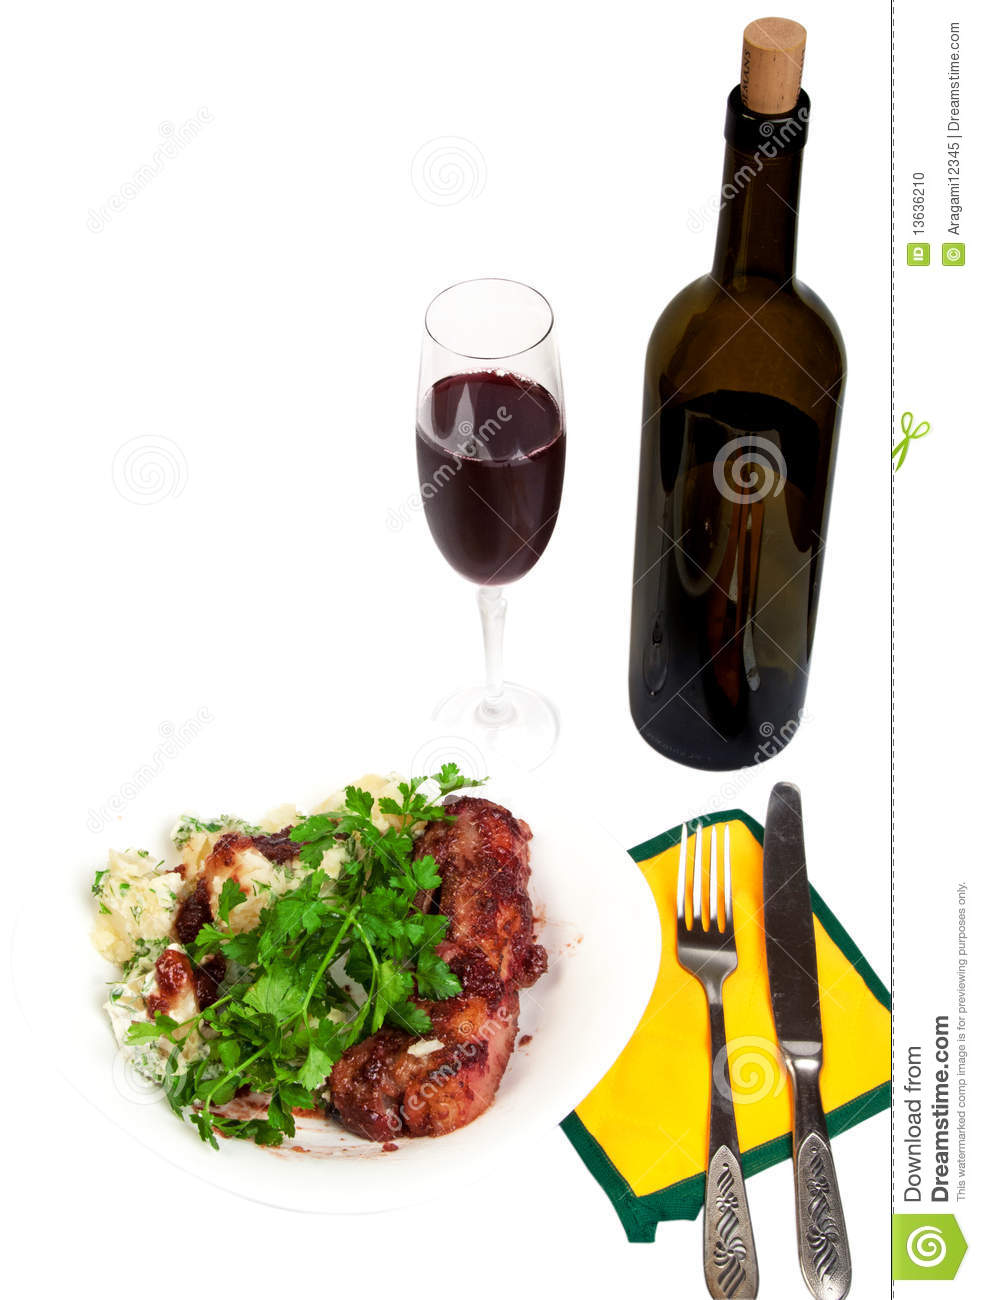 Pork Ribs With Potato And Wine Stock Photo - Image: 13636210